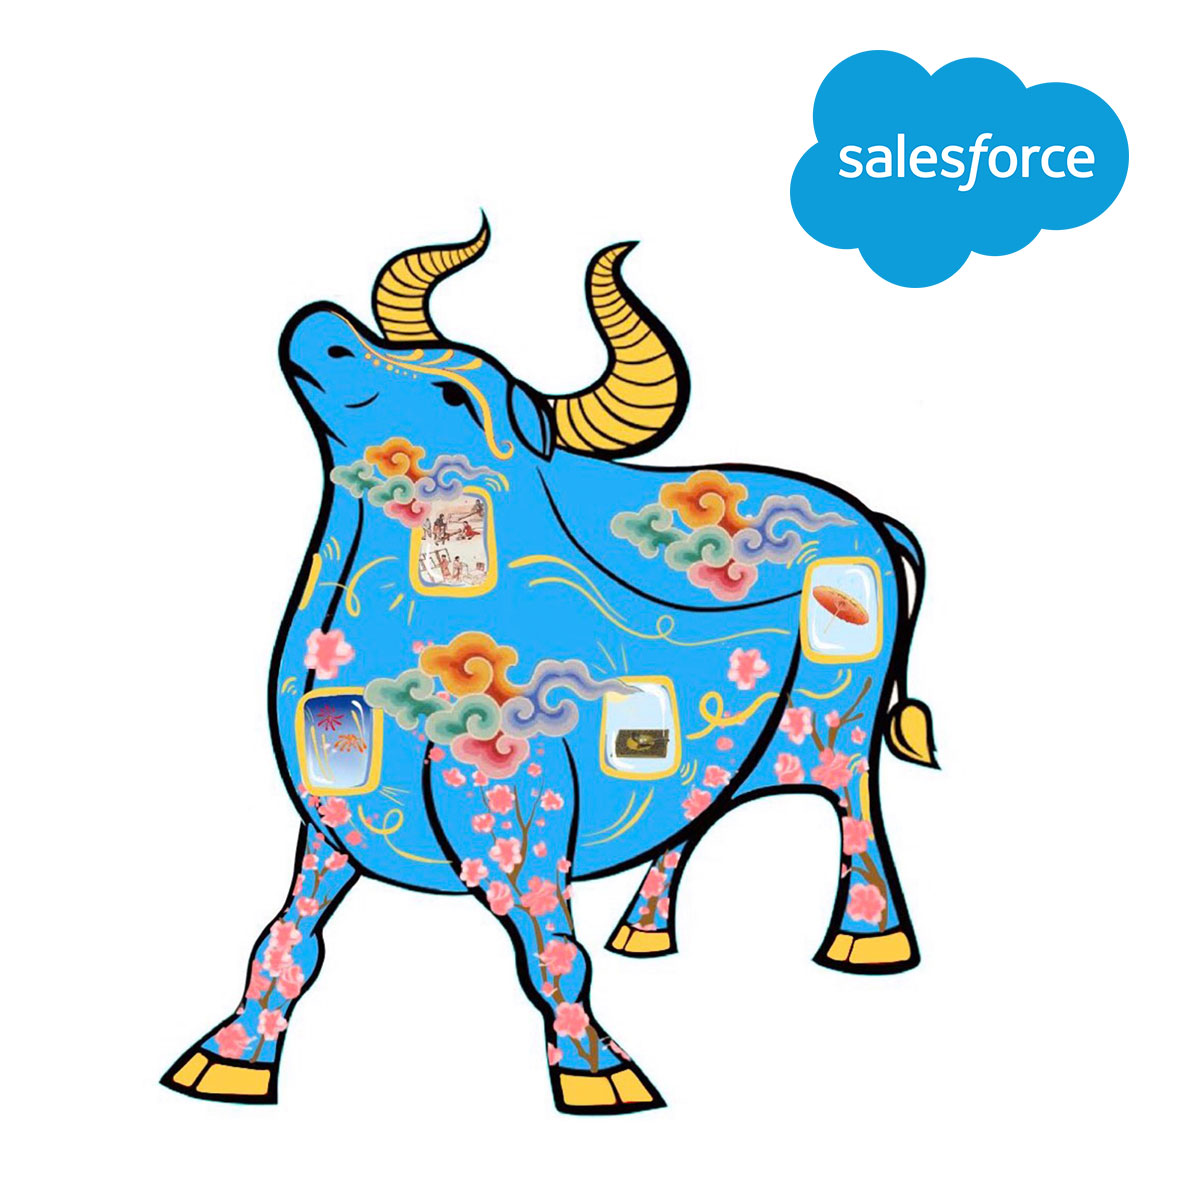 Salesforce Ancient Tech